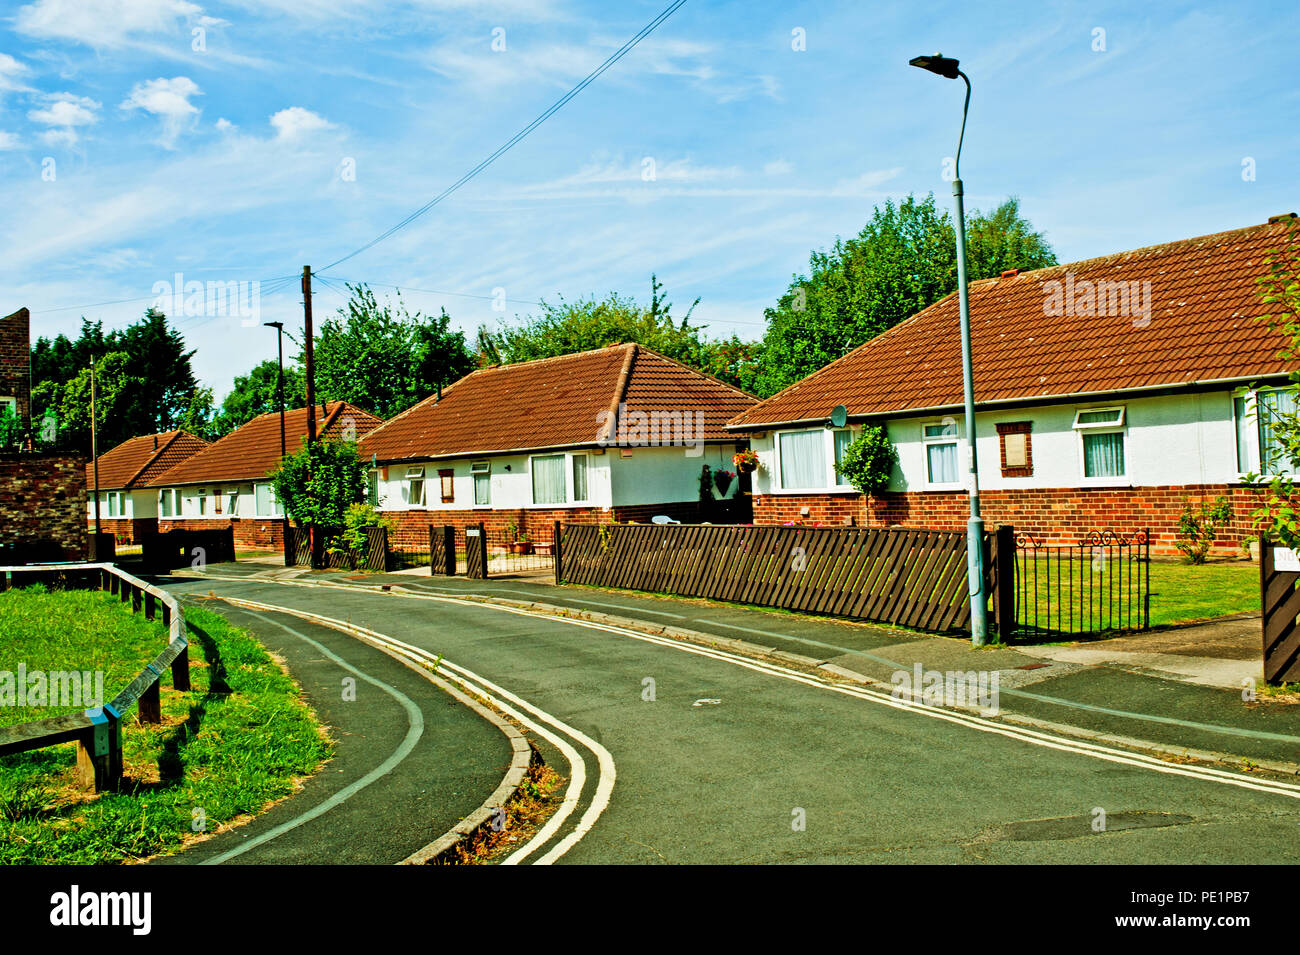 North Eastern Railway Cottages, Murrough Wilson Court, York, England - Stock Image